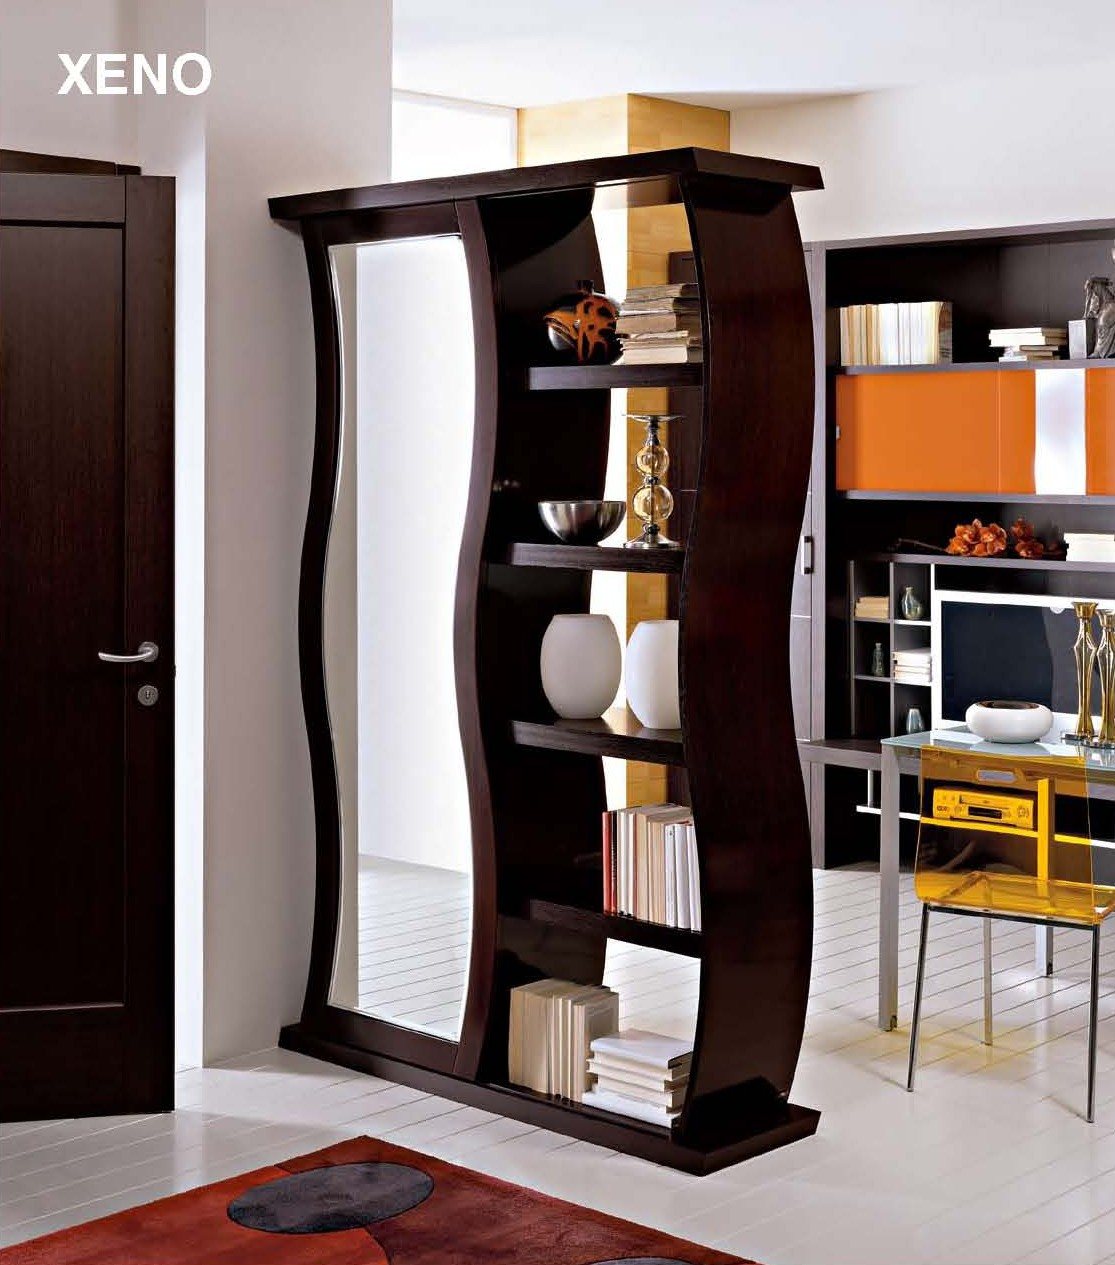 Home priority inspiring room divider ideas that best to for Living room dining room divider ideas